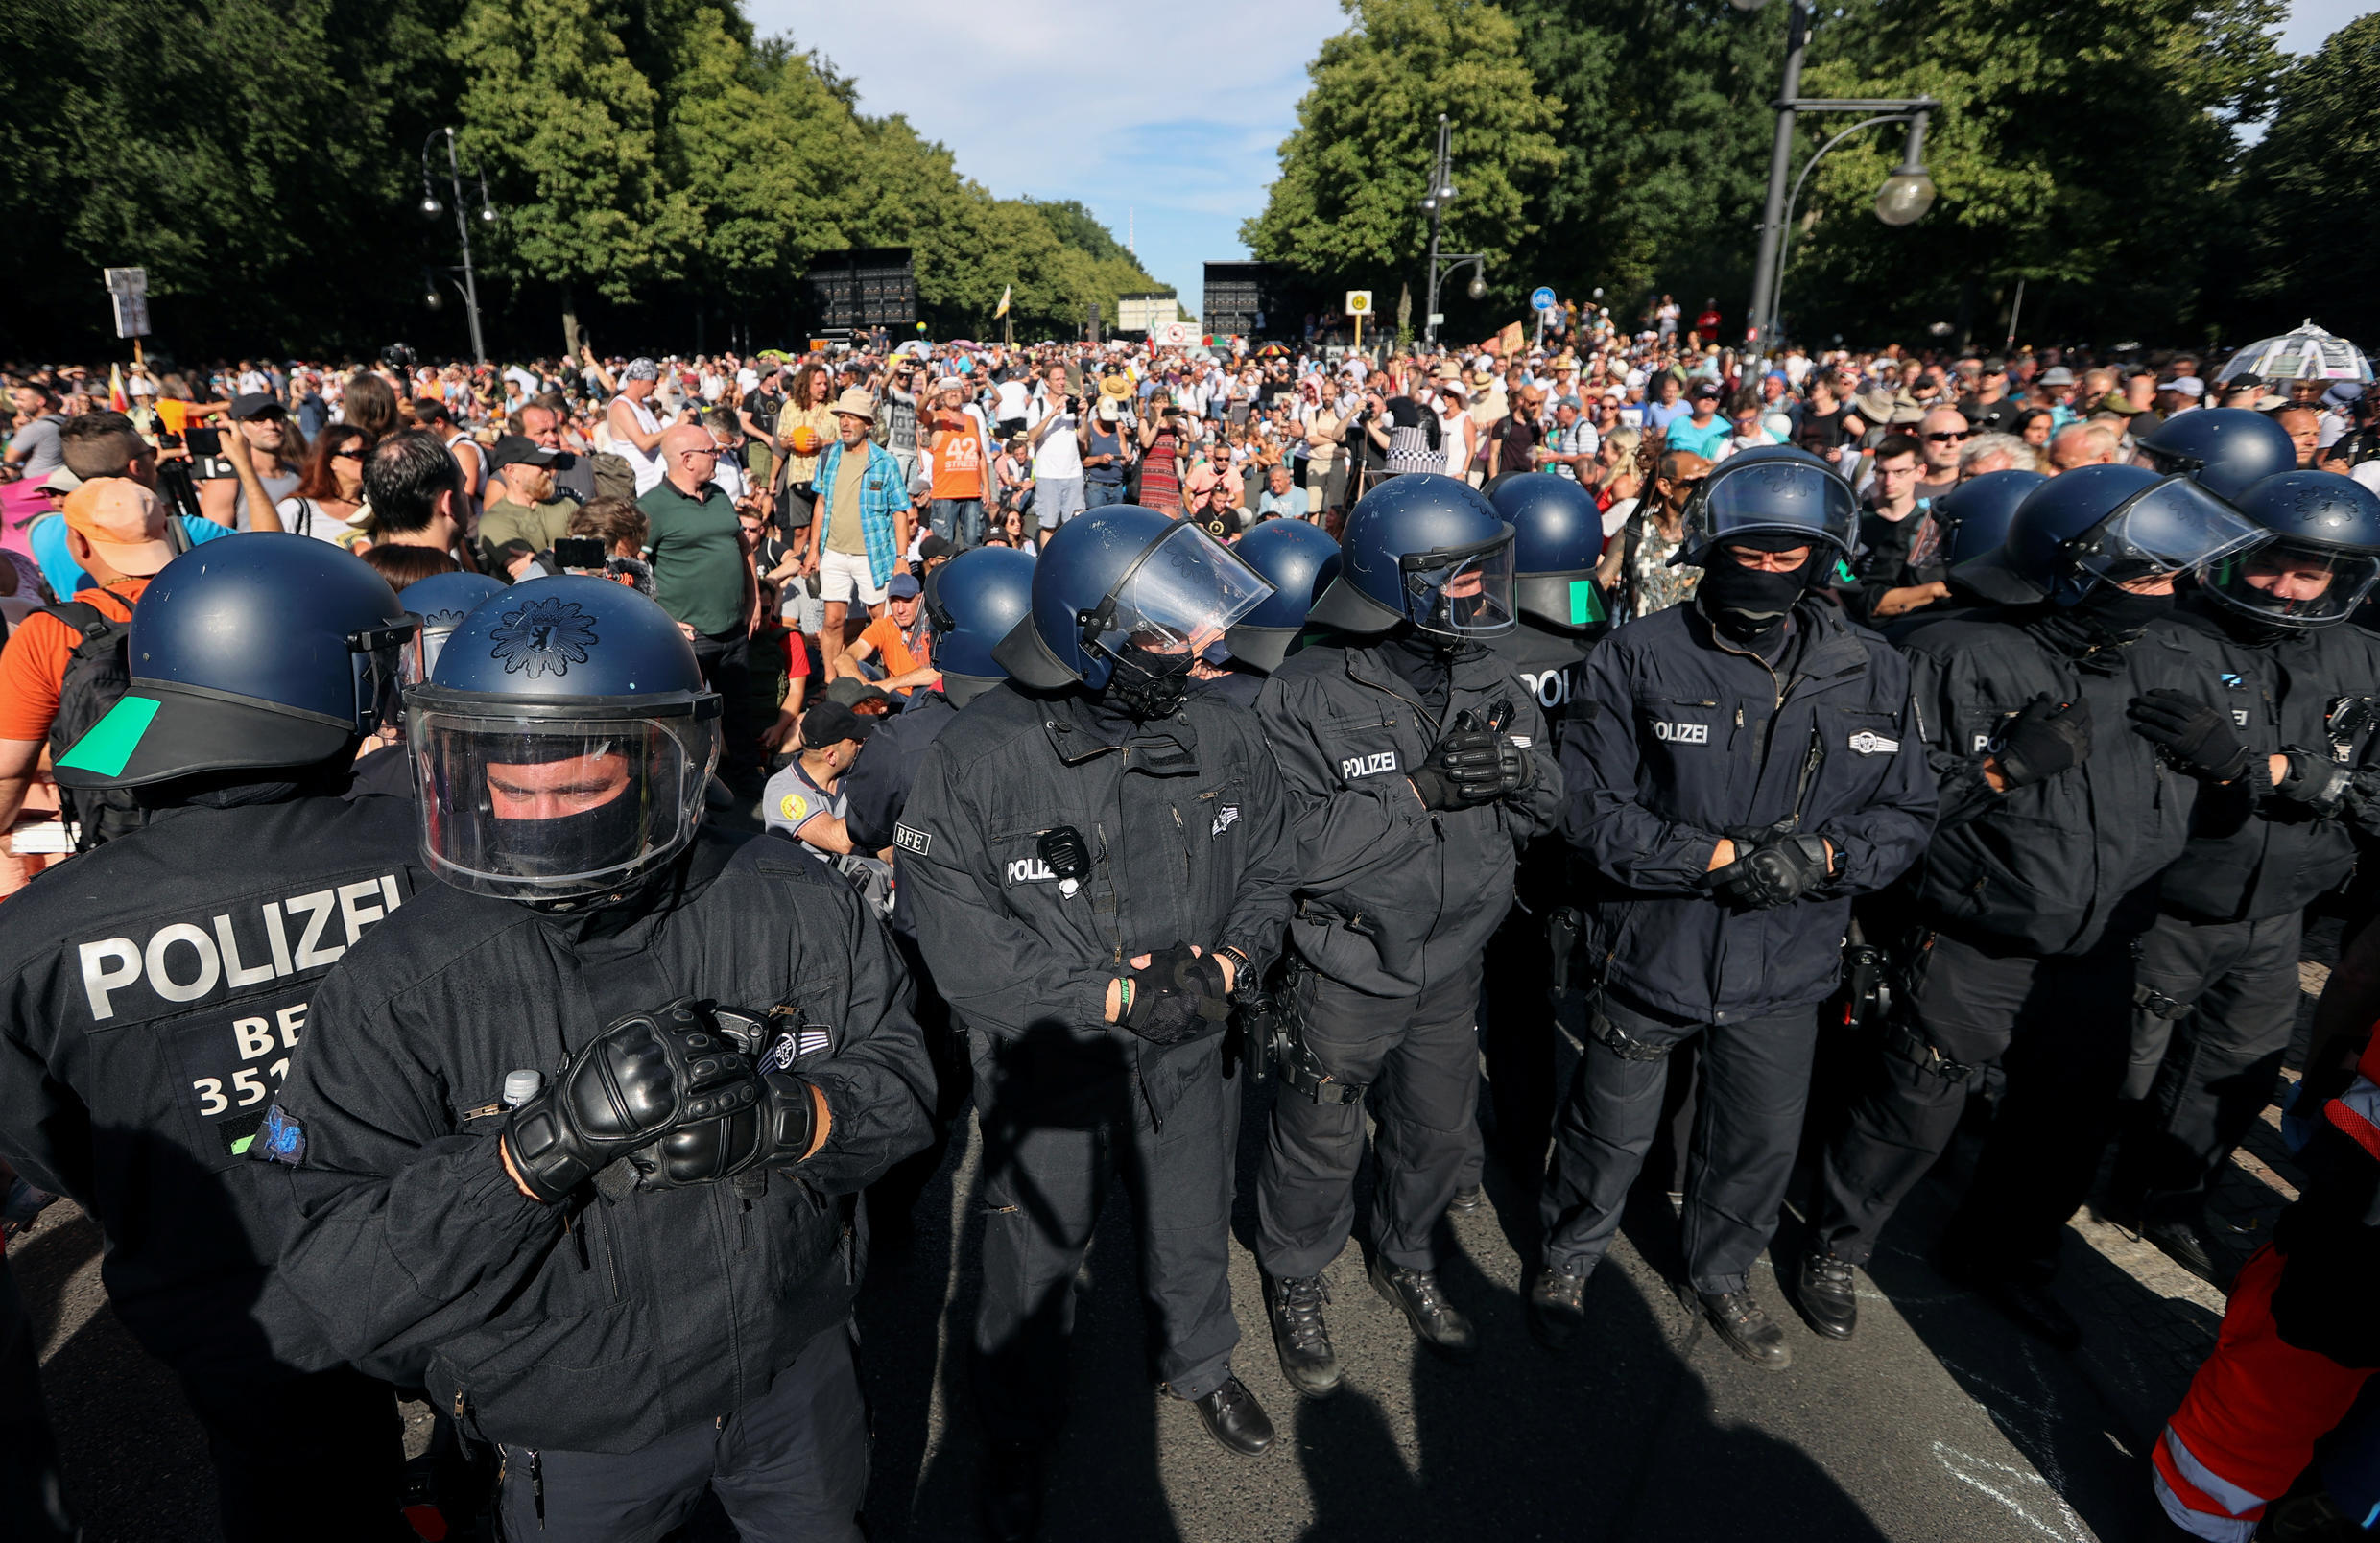 2020-08-01T152657Z_782336969_RC235I9MHHCM_RTRMADP_3_GERMANY-PROTESTS